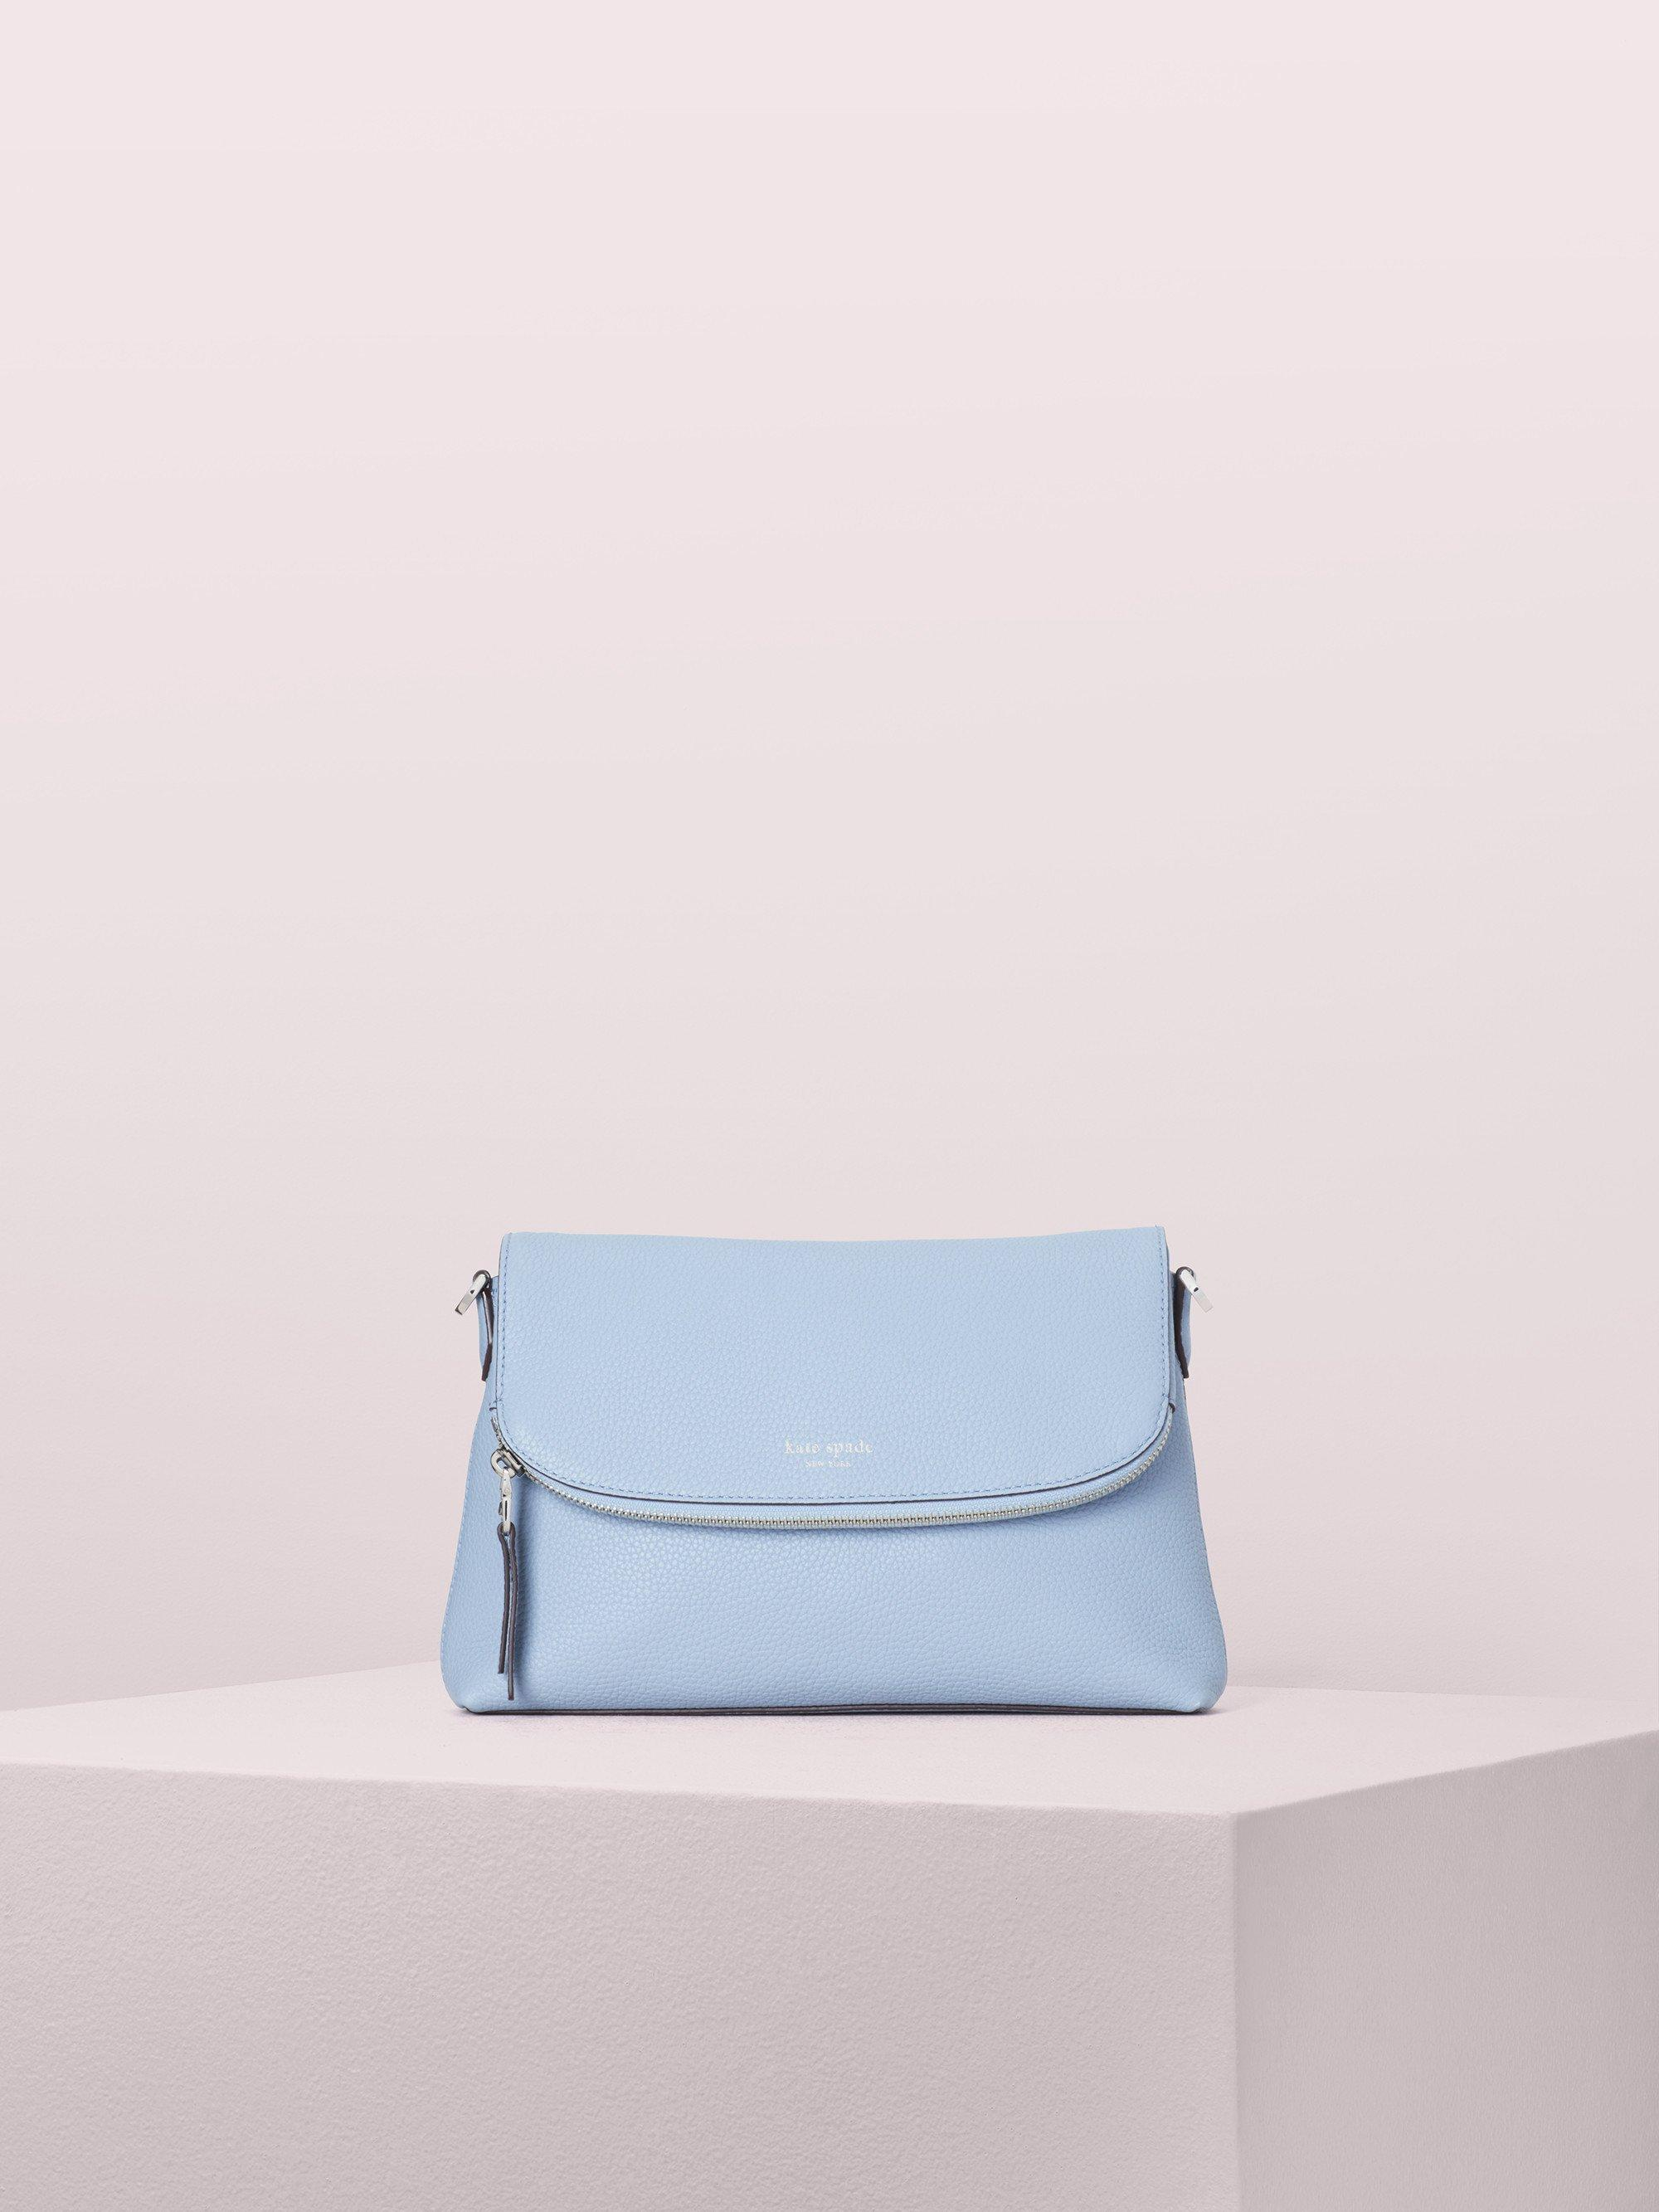 02cec8a6ef6d Kate Spade. Women s Blue Polly Large Convertible Crossbody. £250 From kate  spade new york